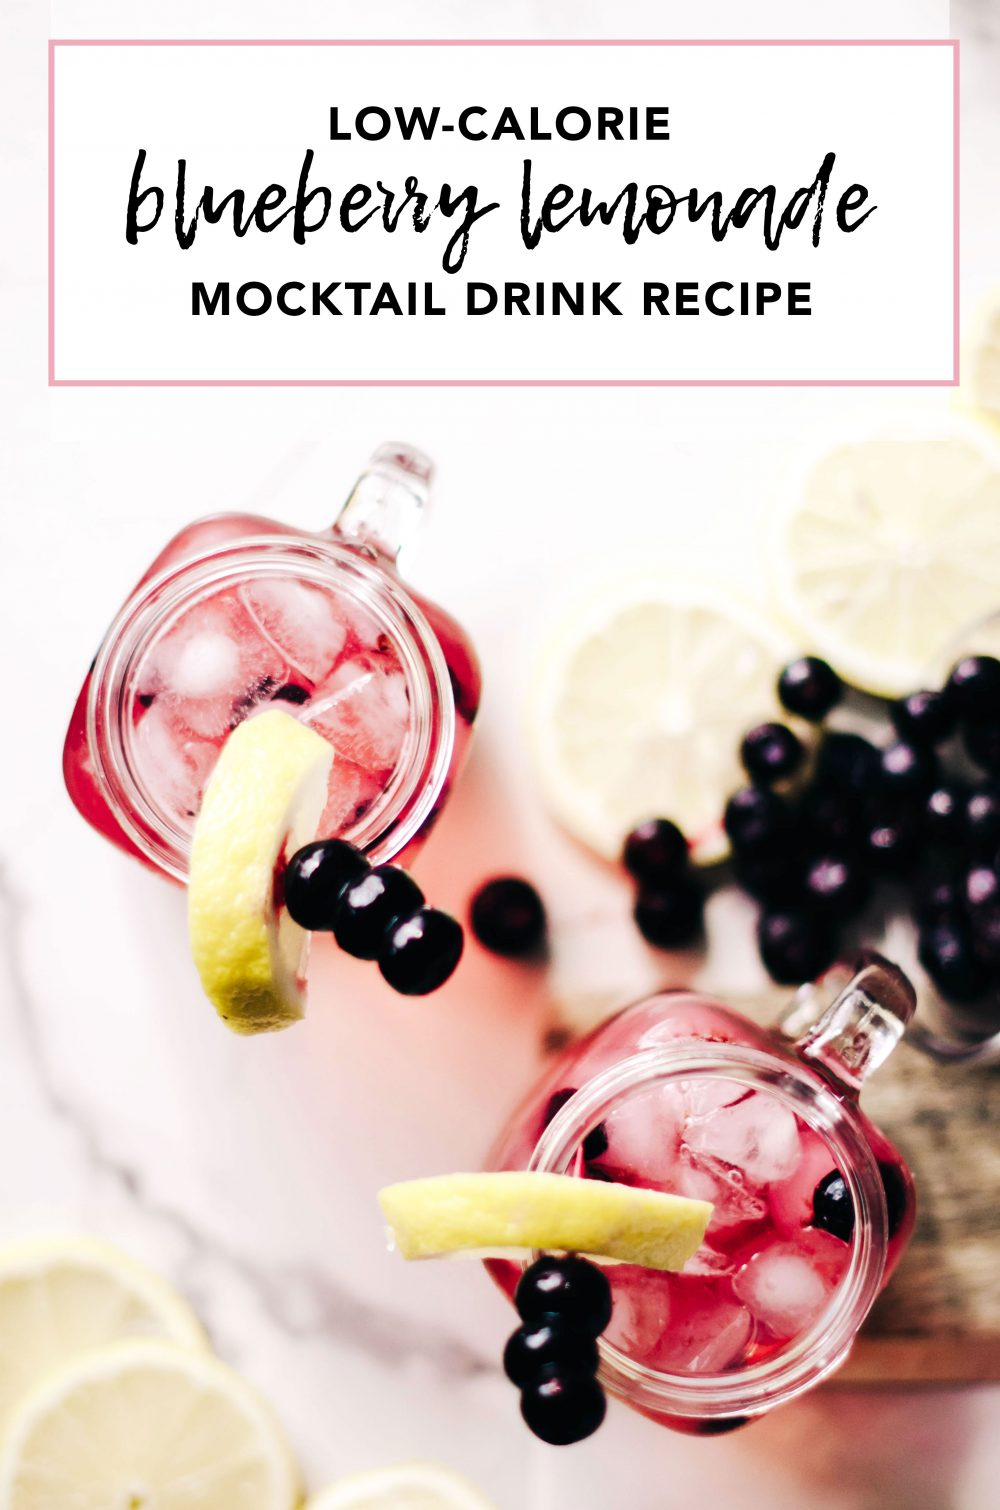 Low-Calorie Blueberry Lemonade Mocktail Drink Recipe with SunRype Slim 10